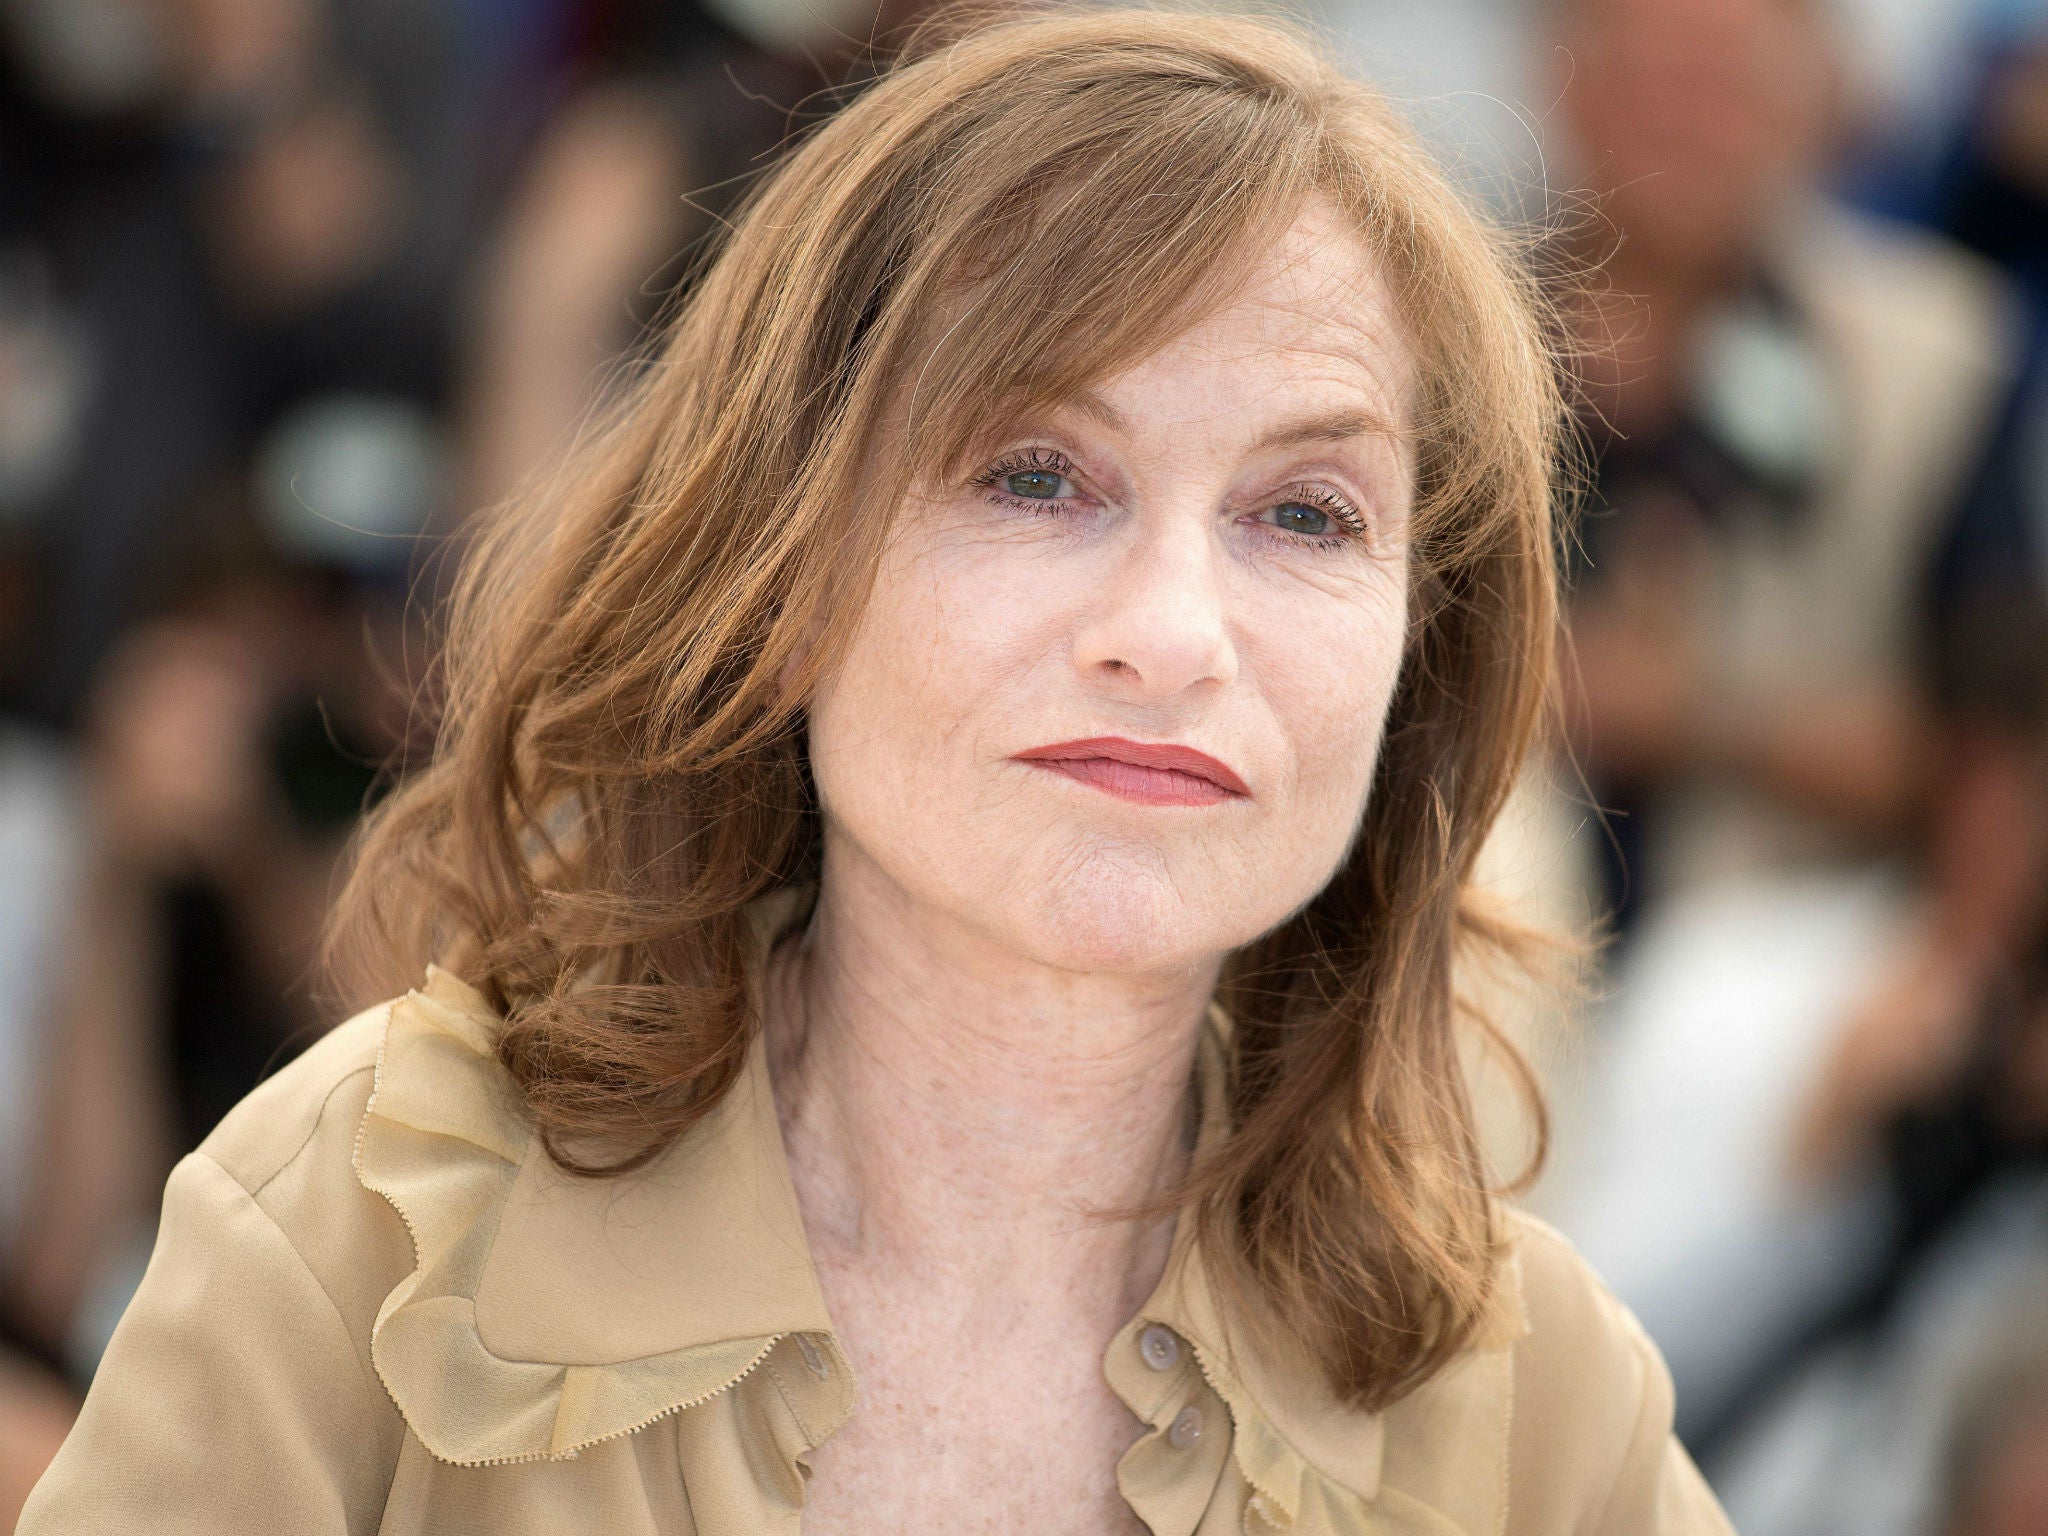 isabelle huppert jeuneisabelle huppert young, isabelle huppert elle, isabelle huppert instagram, isabelle huppert oscar, isabelle huppert gif, isabelle huppert interview, isabelle huppert height, isabelle huppert zimbio, isabelle huppert кинопоиск, isabelle huppert movies, isabelle huppert 8 femmes, isabelle huppert souvenir, isabelle huppert style, isabelle huppert – message personnel, isabelle huppert oscar 2017, isabelle huppert wiki, isabelle huppert films, isabelle huppert 2017, isabelle huppert best movies, isabelle huppert jeune